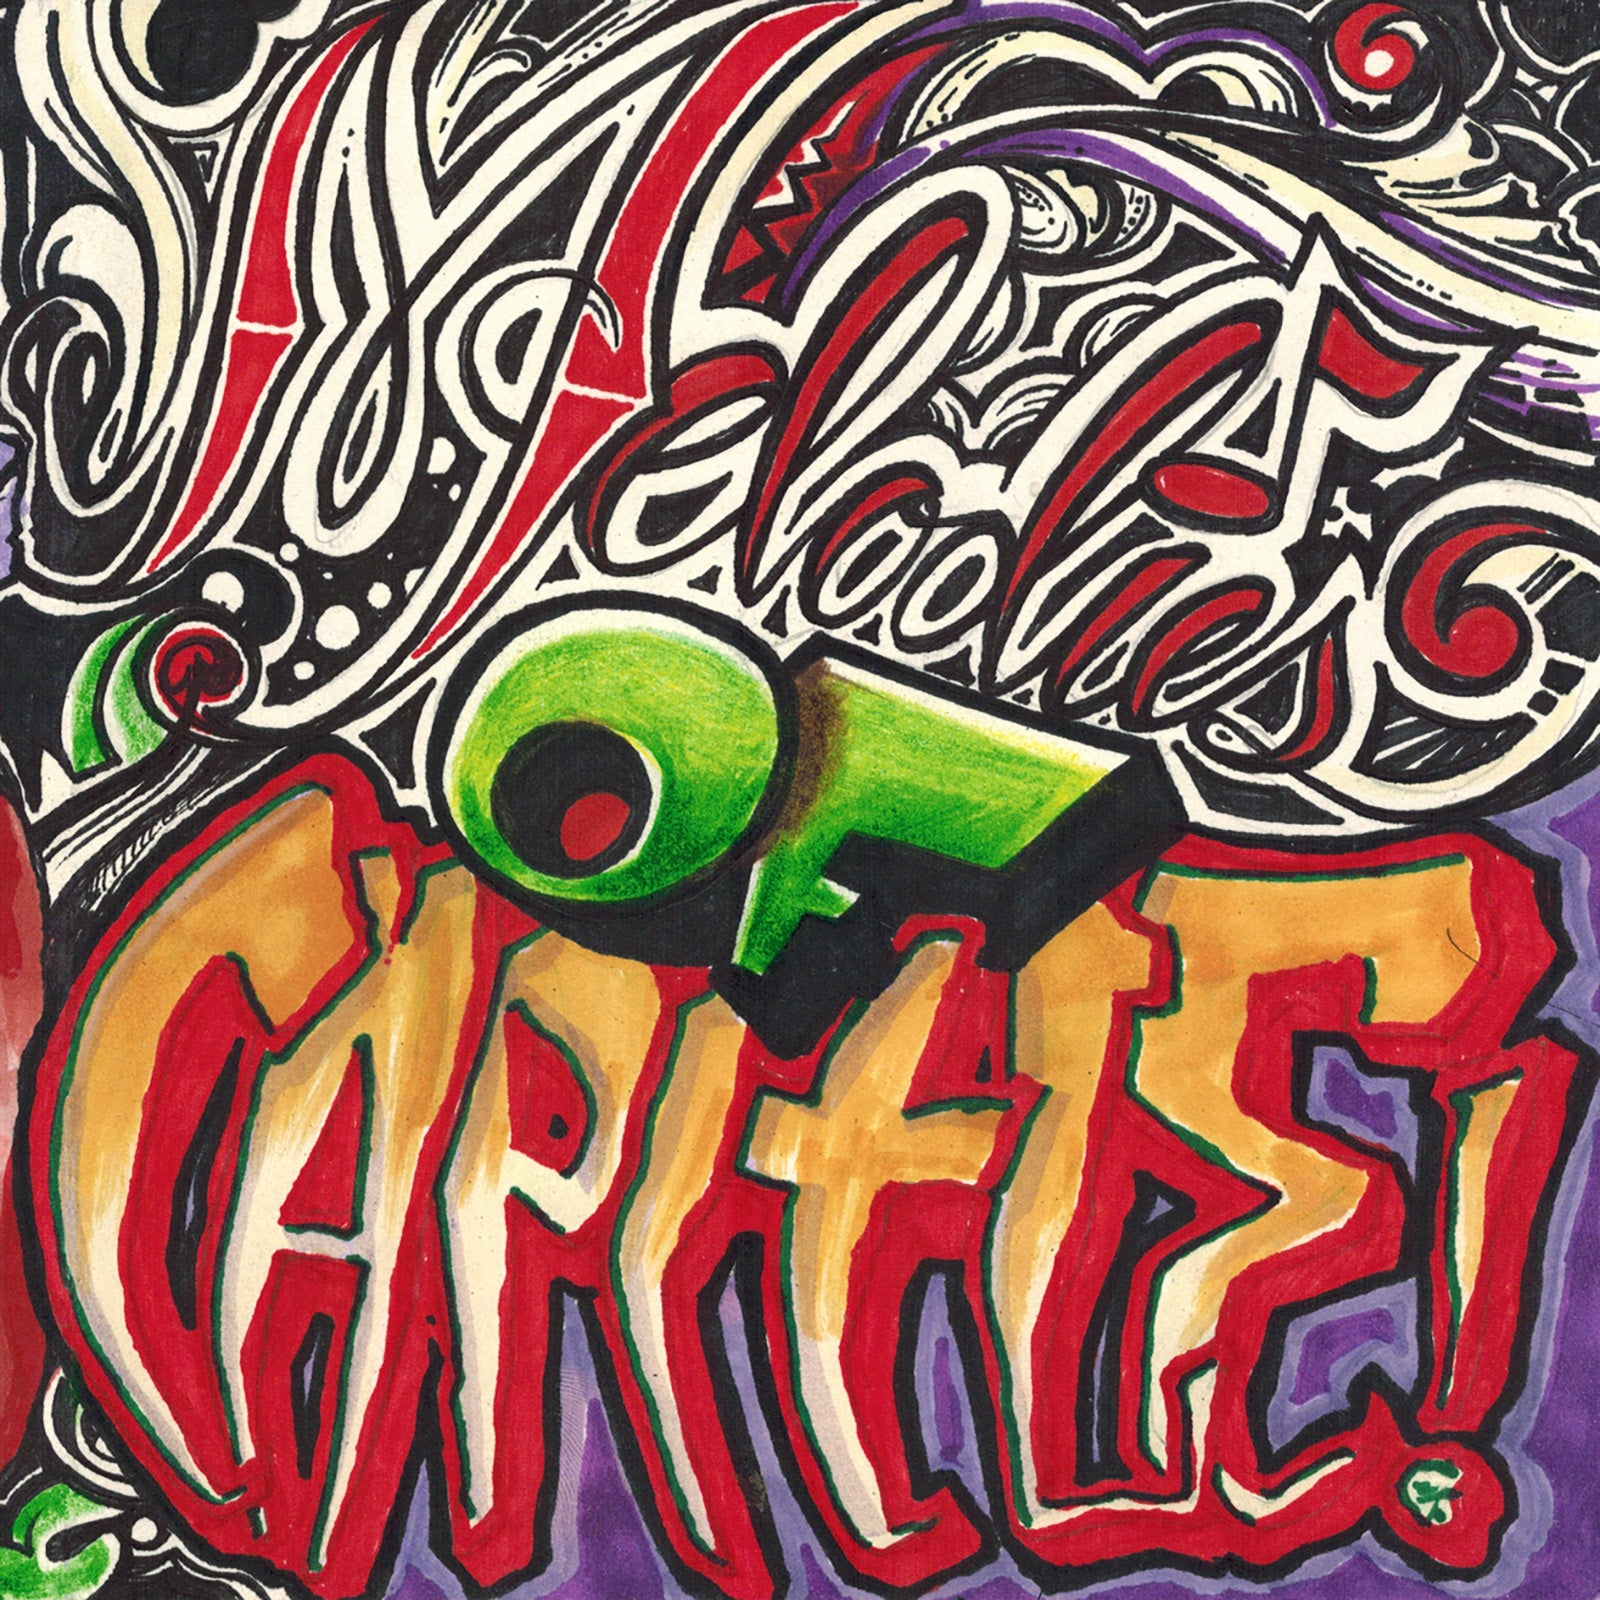 "capitle -melodies of capitle - 7"" Vinyl"